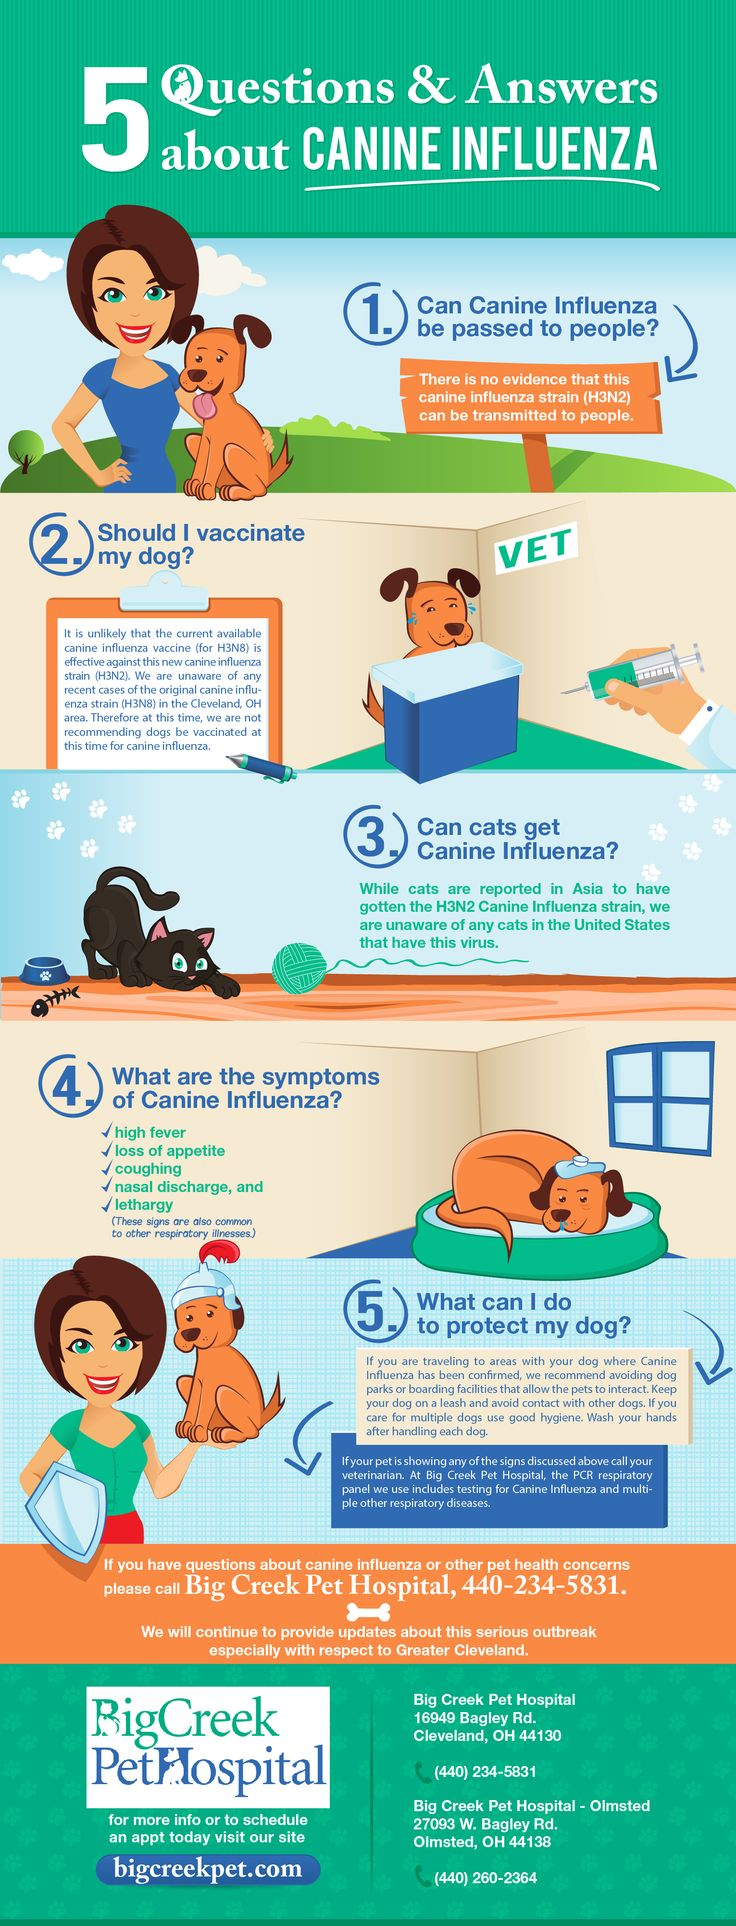 The Top 5 Questions About The Canine Influenza Outbreak Answered By an Expert Veterinarian in Cleveland, OH http://www.bigcreekpet.com/five-questions-and-answers-about-canine-influenza-in-cleveland-oh/?utm_source=pinterest&utm_medium=social&utm_campaign=Canine%20Influenza&utm_content=5%20Questions%20InfographicInDescription